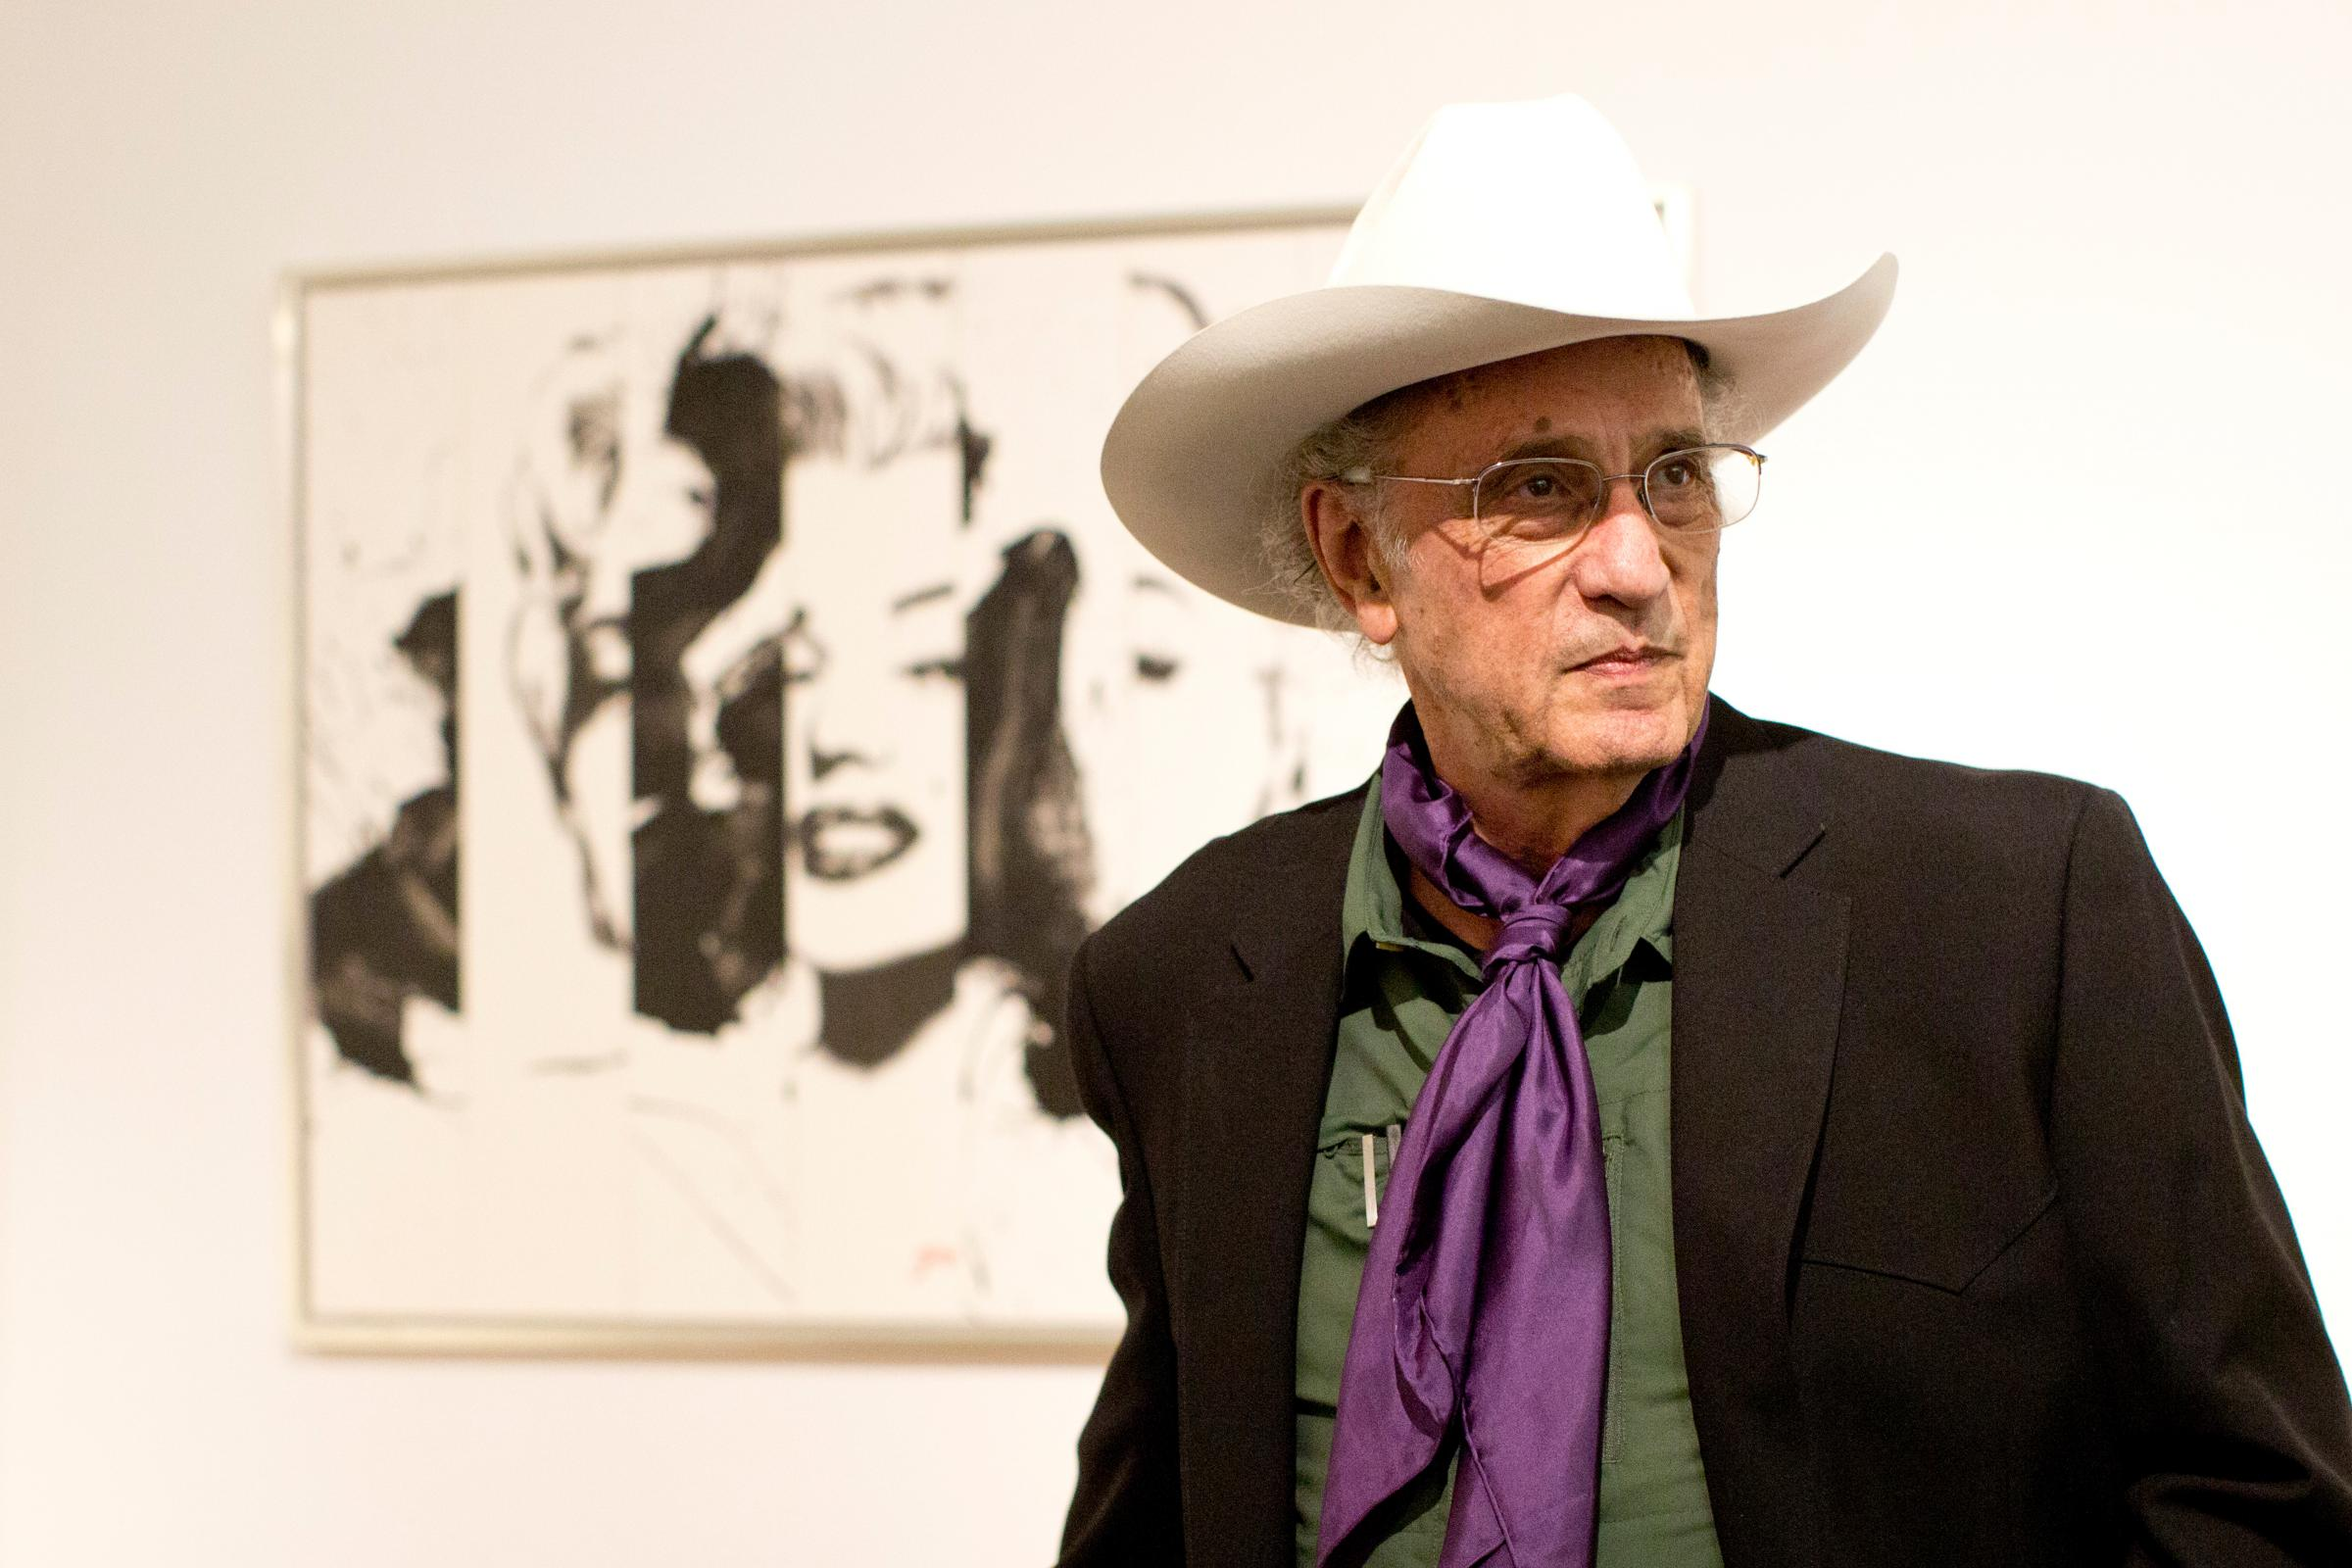 American pop artist James Francis Gill coming to Chester in first UK visit for 54 years